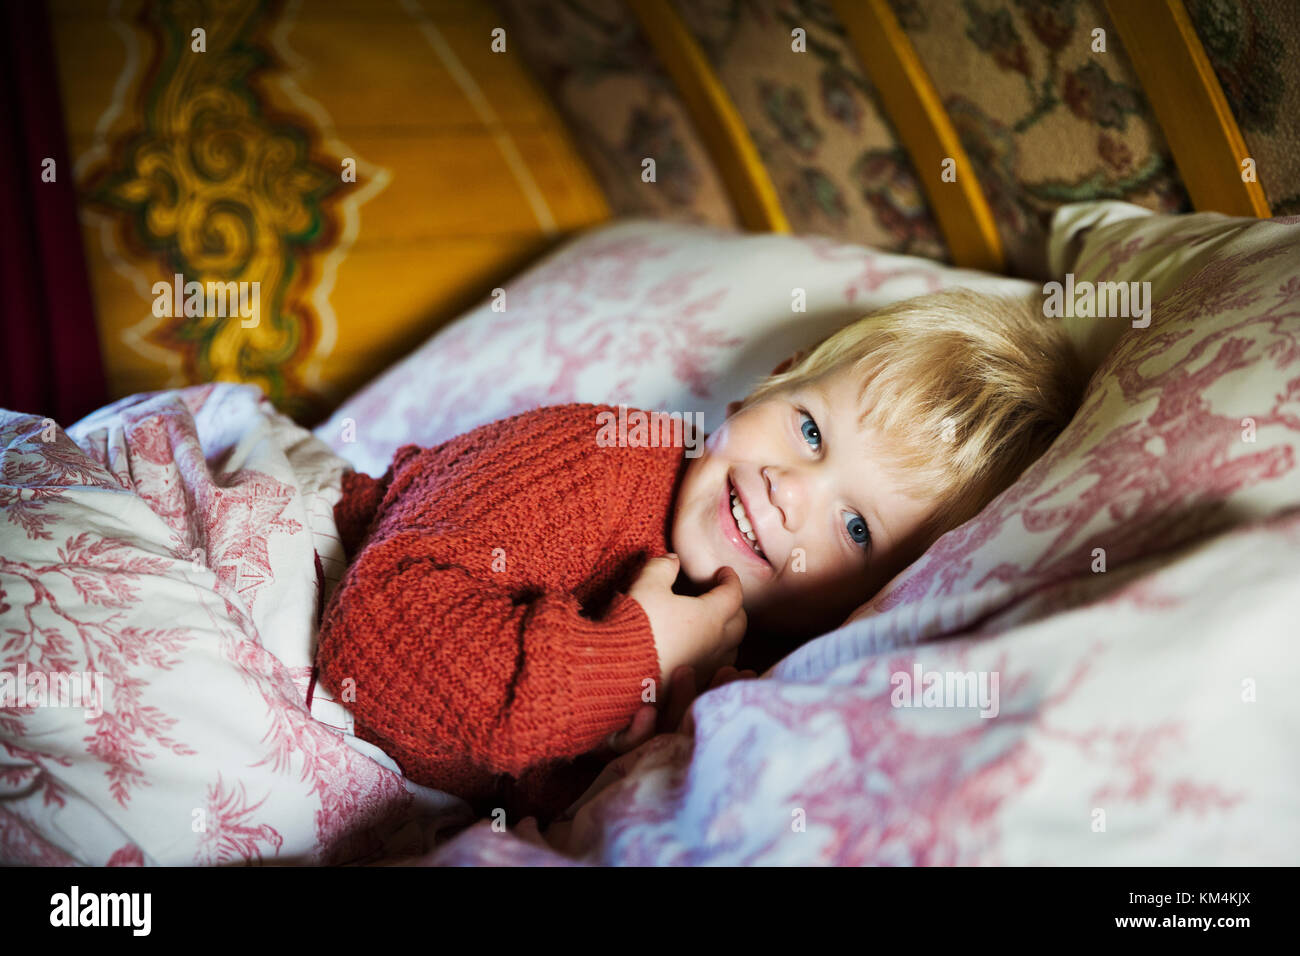 A boy lying in bed under a curved bow top roof of a gypsy caravan, looking at the camera. - Stock Image